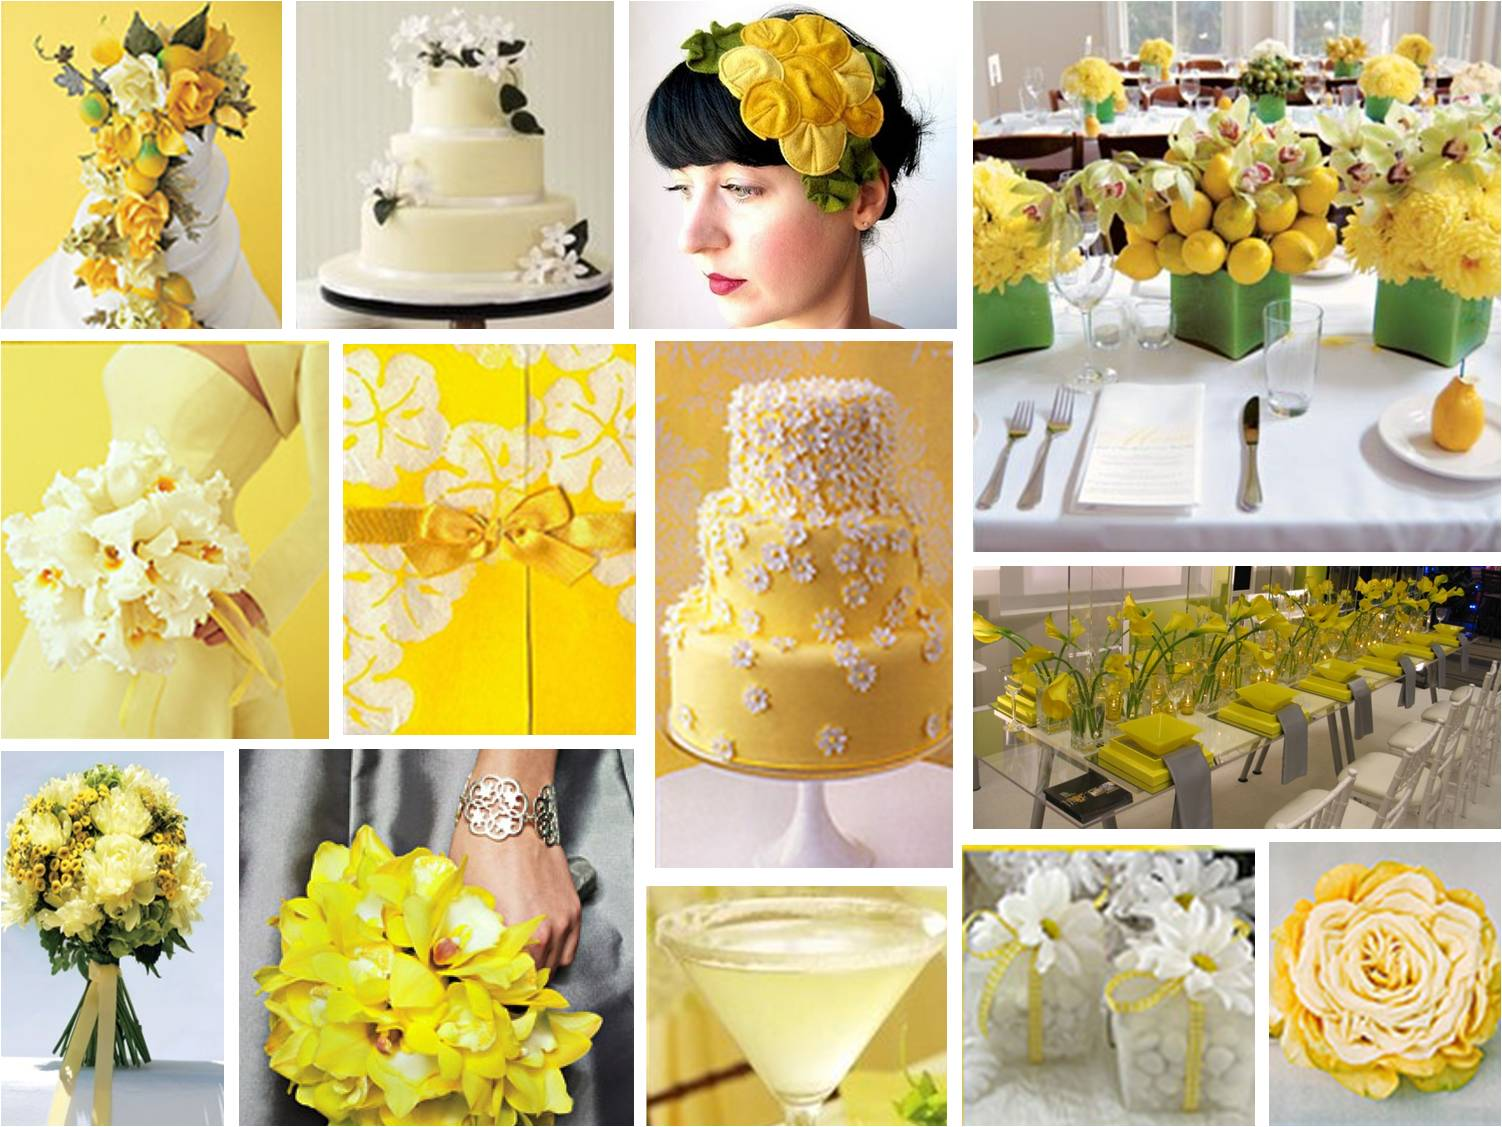 Decoration mariage osez le jaune mariage en vogue for Decoration jaune